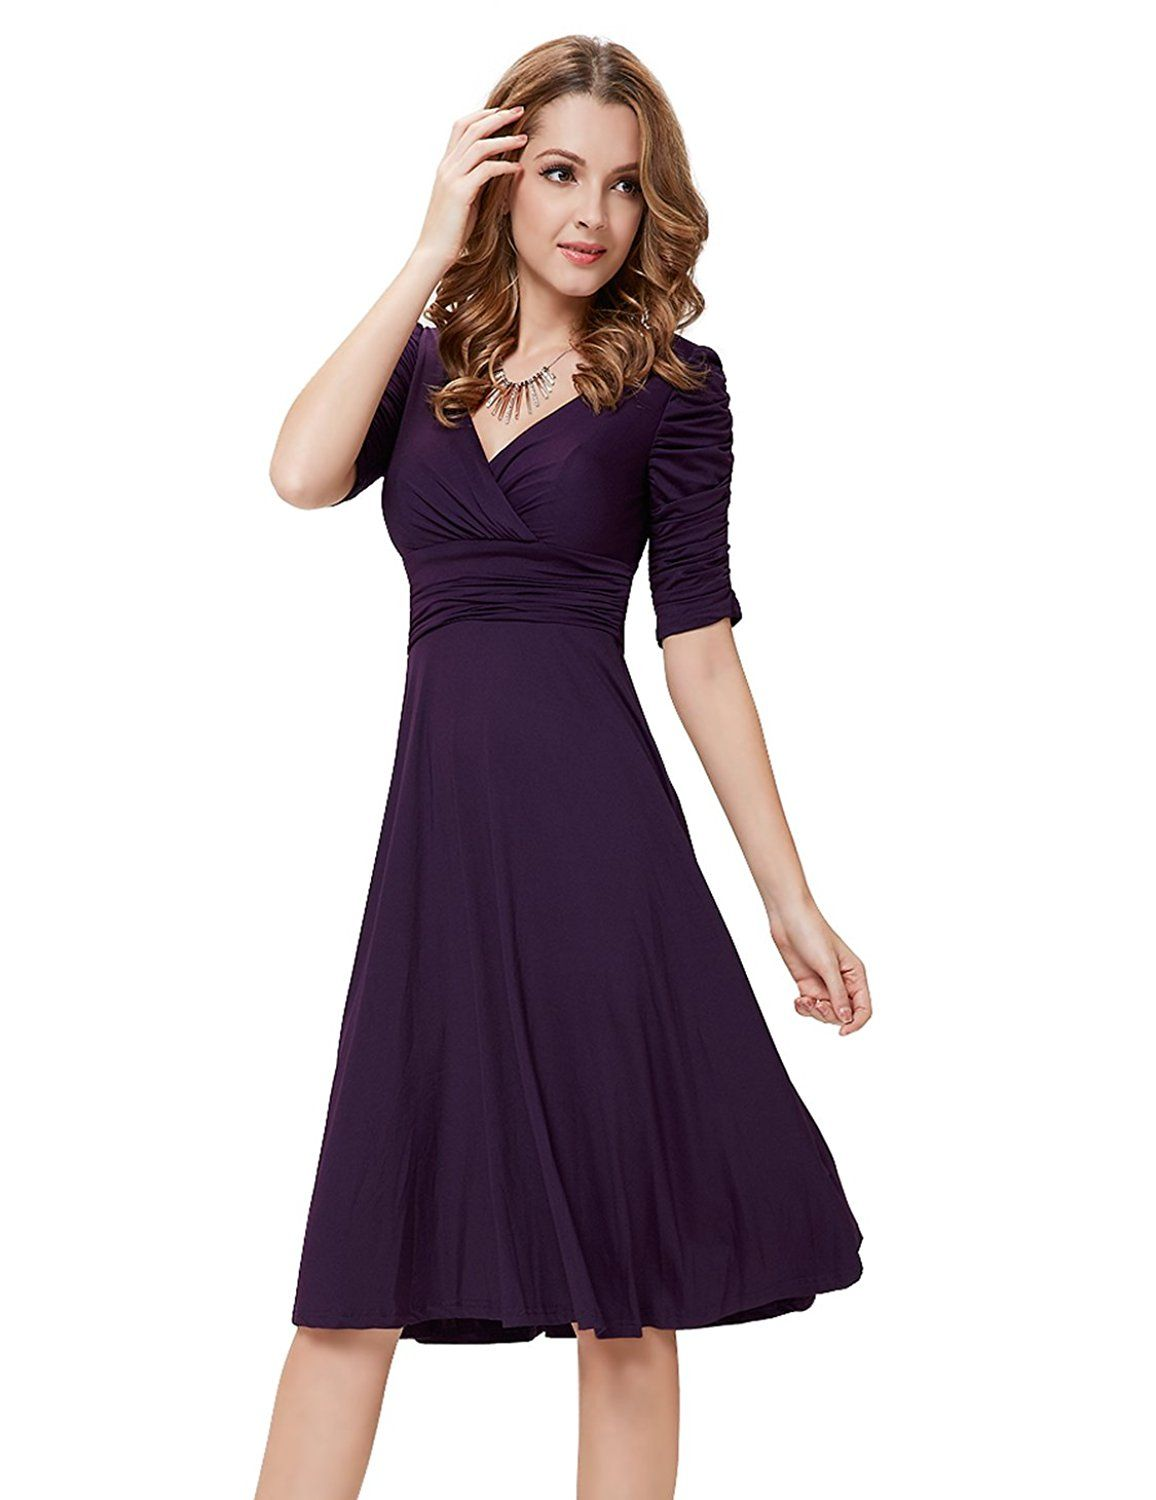 Ever Pretty 3 4 Sleeve Ruched Waist Classy V Neck Casual Cocktail Dress 03632 At Amazon Women Casual Cocktail Dress Women S A Line Dresses Pretty Women Dresses [ 1500 x 1156 Pixel ]